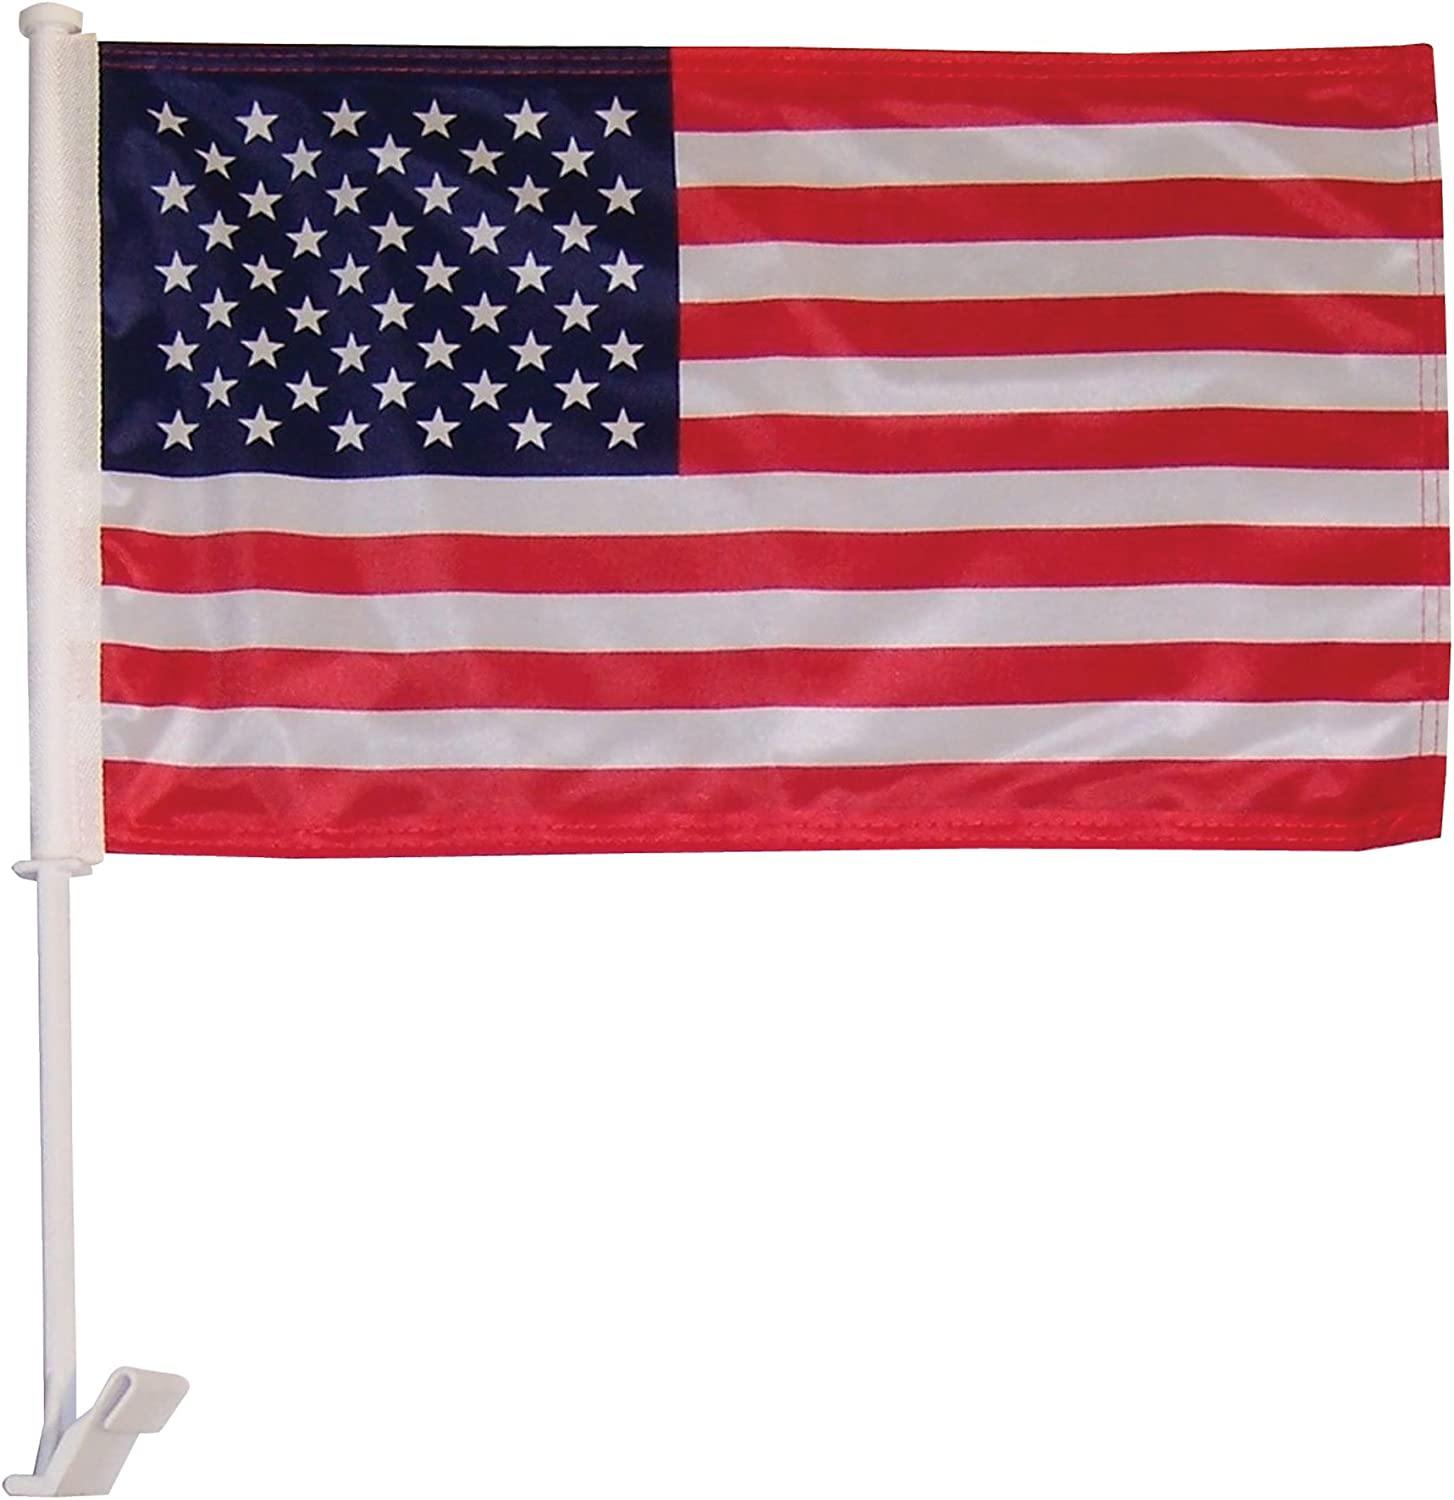 In the Breeze U.S. Flag Car Flag - Double Sided - Hooks onto Car Window